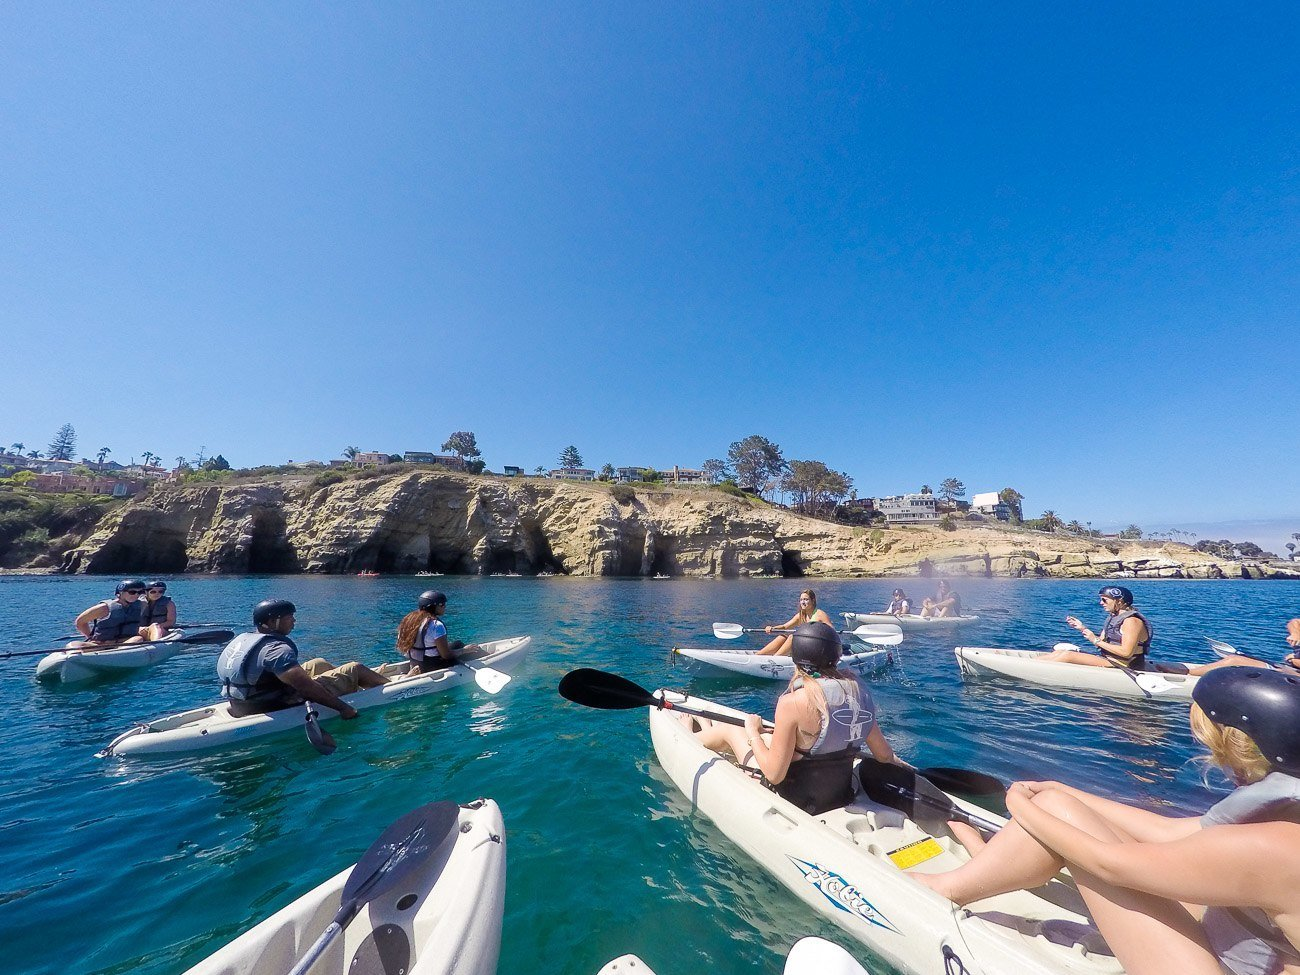 Go kayaking around the La Jolla Underwater Park with Everyday California